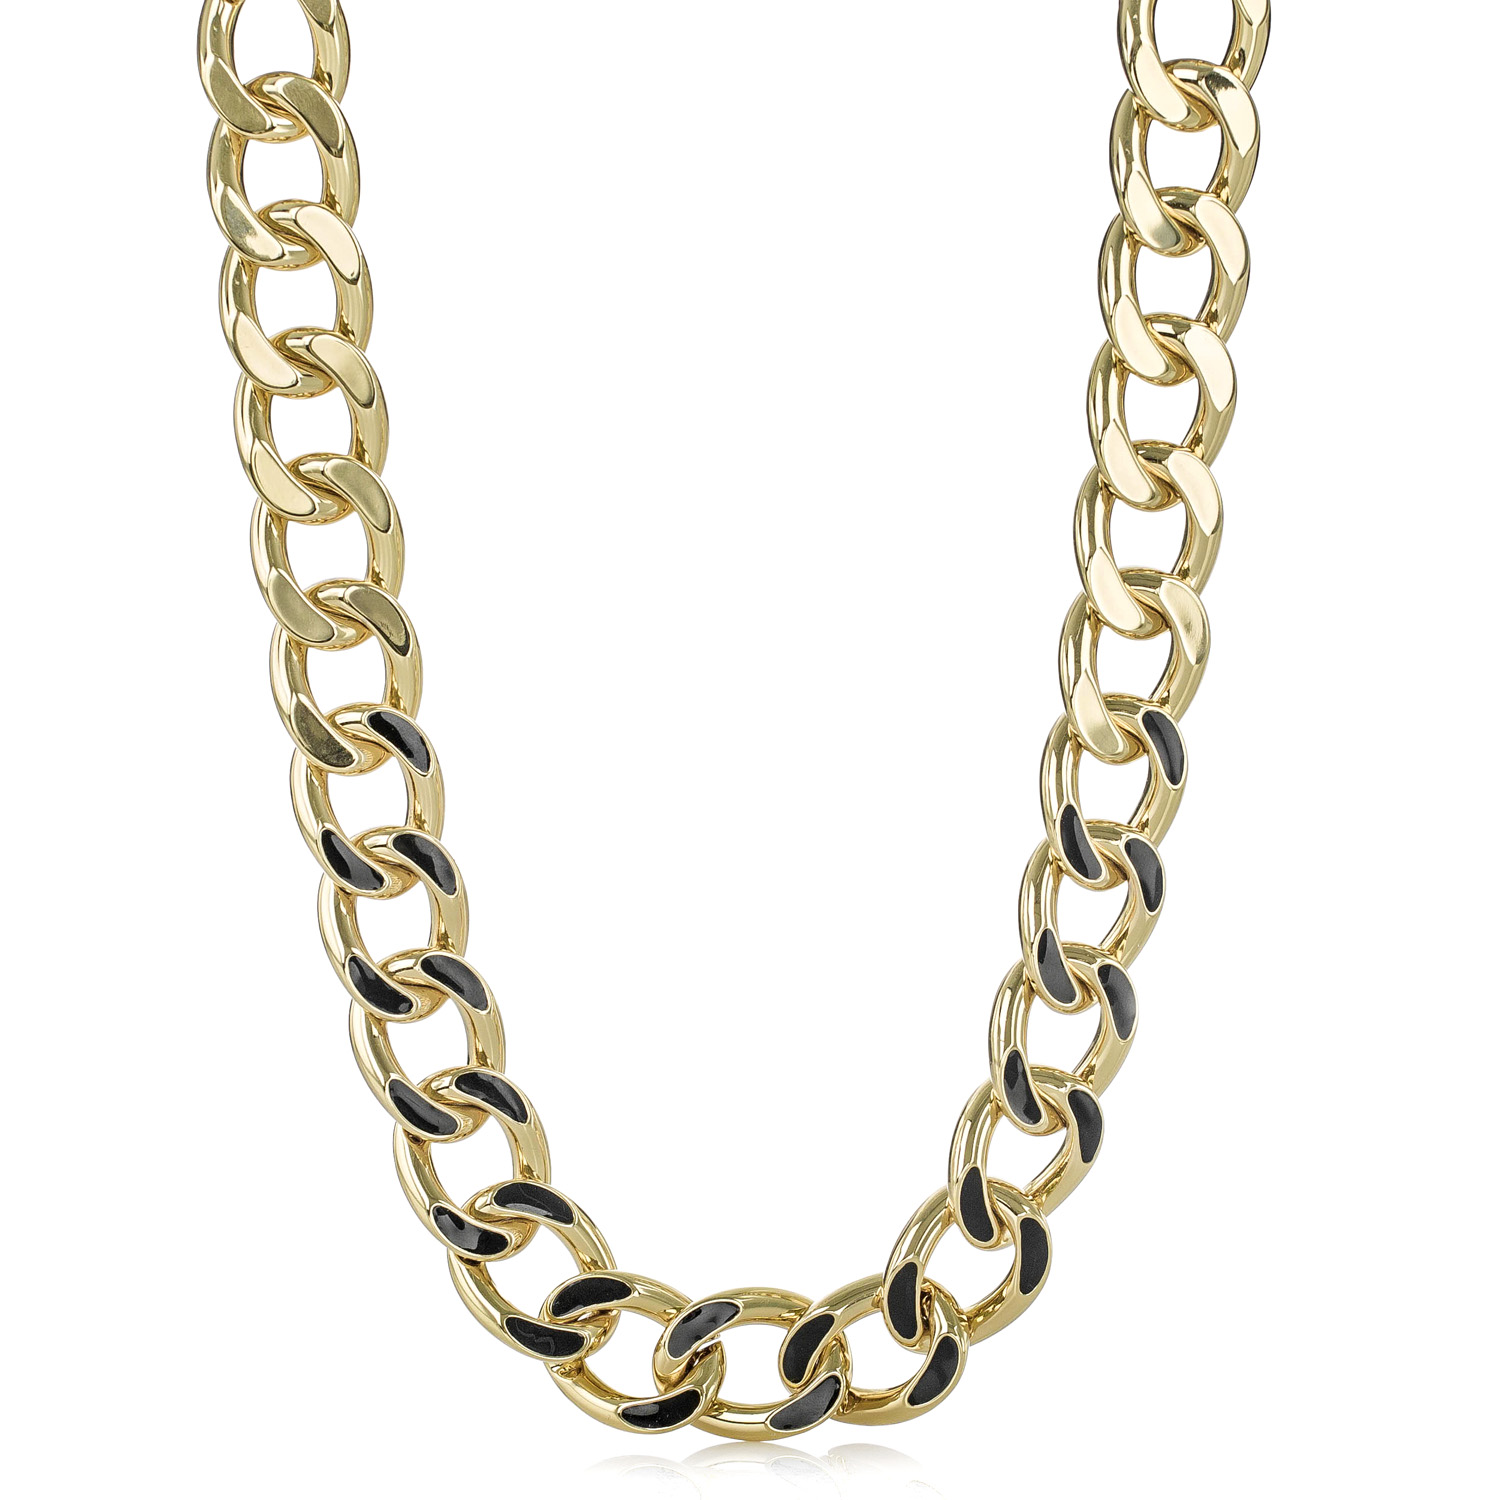 look chain solid gold necklaces revere r product ladies argos necklace buy curb web